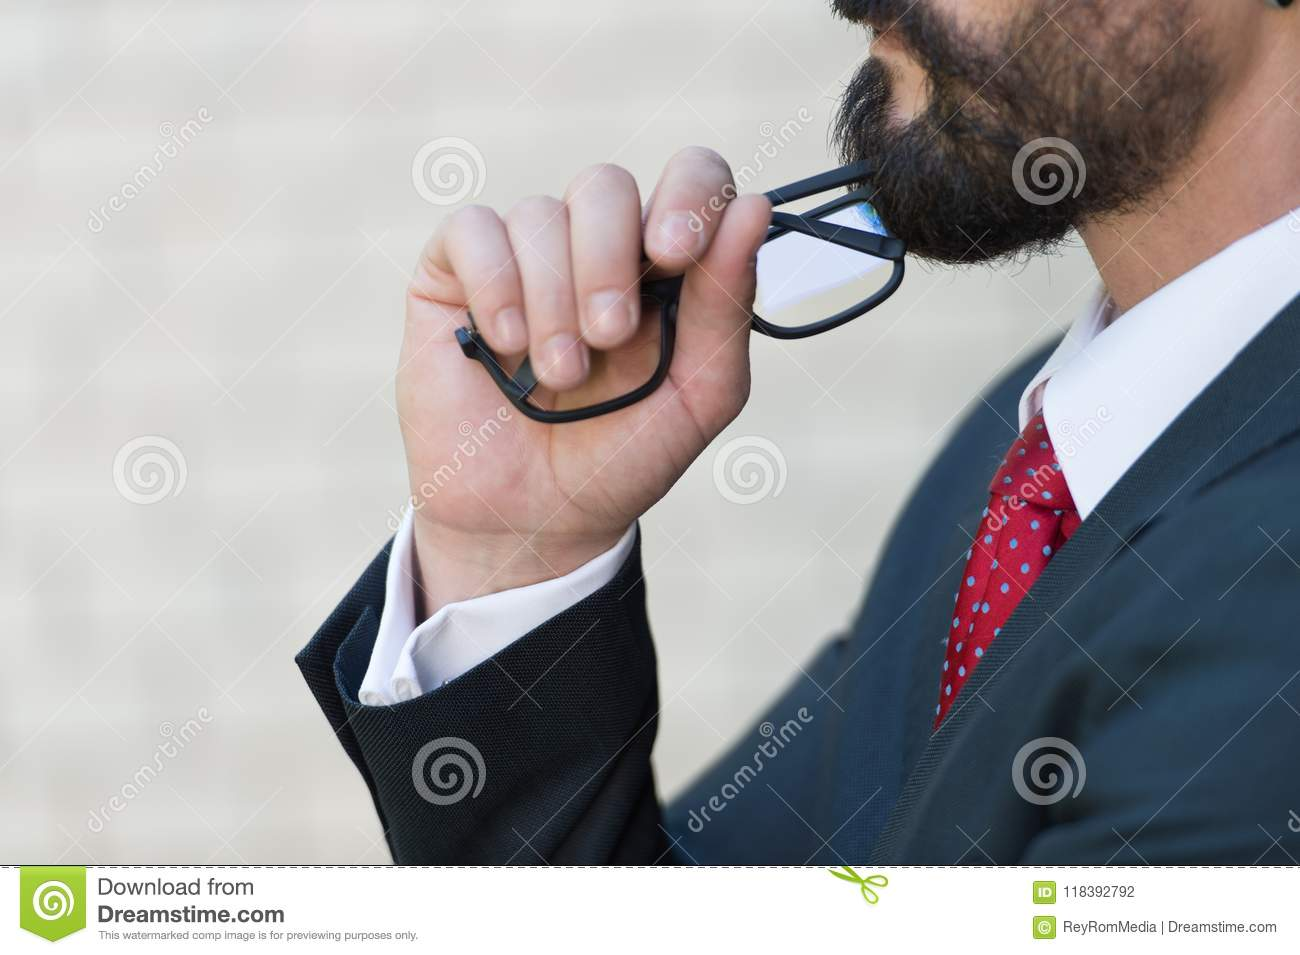 Close up profile of bearded businessman and hand holds glasses. Man in blue suit and red tie thinking over new idea.